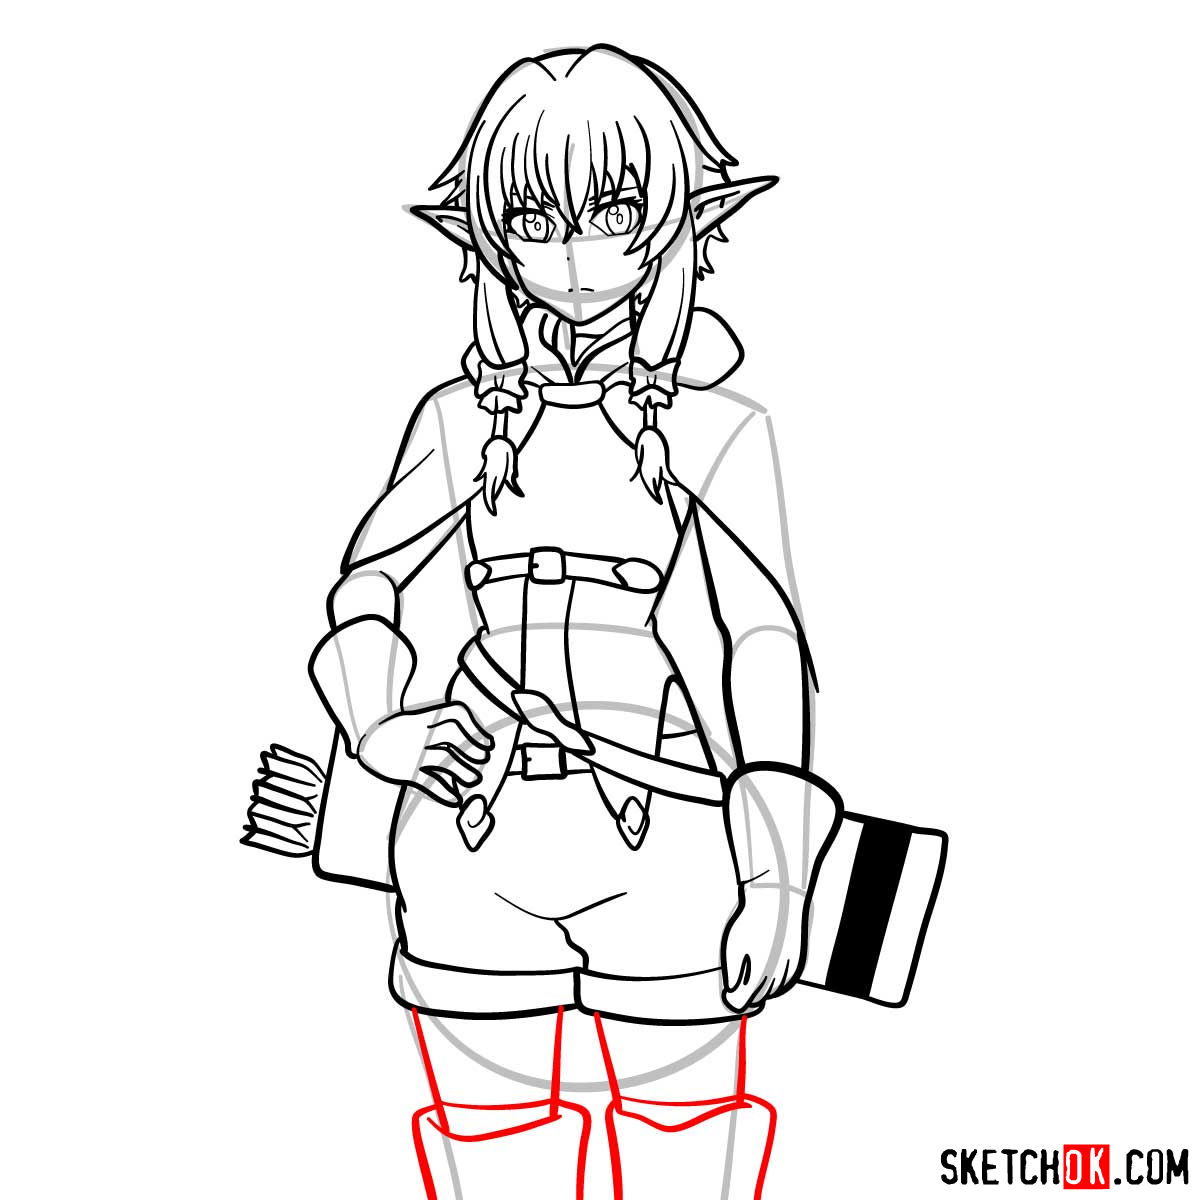 20 steps drawing tutorial of High Elf Archer (Goblin Slayer) - step 15